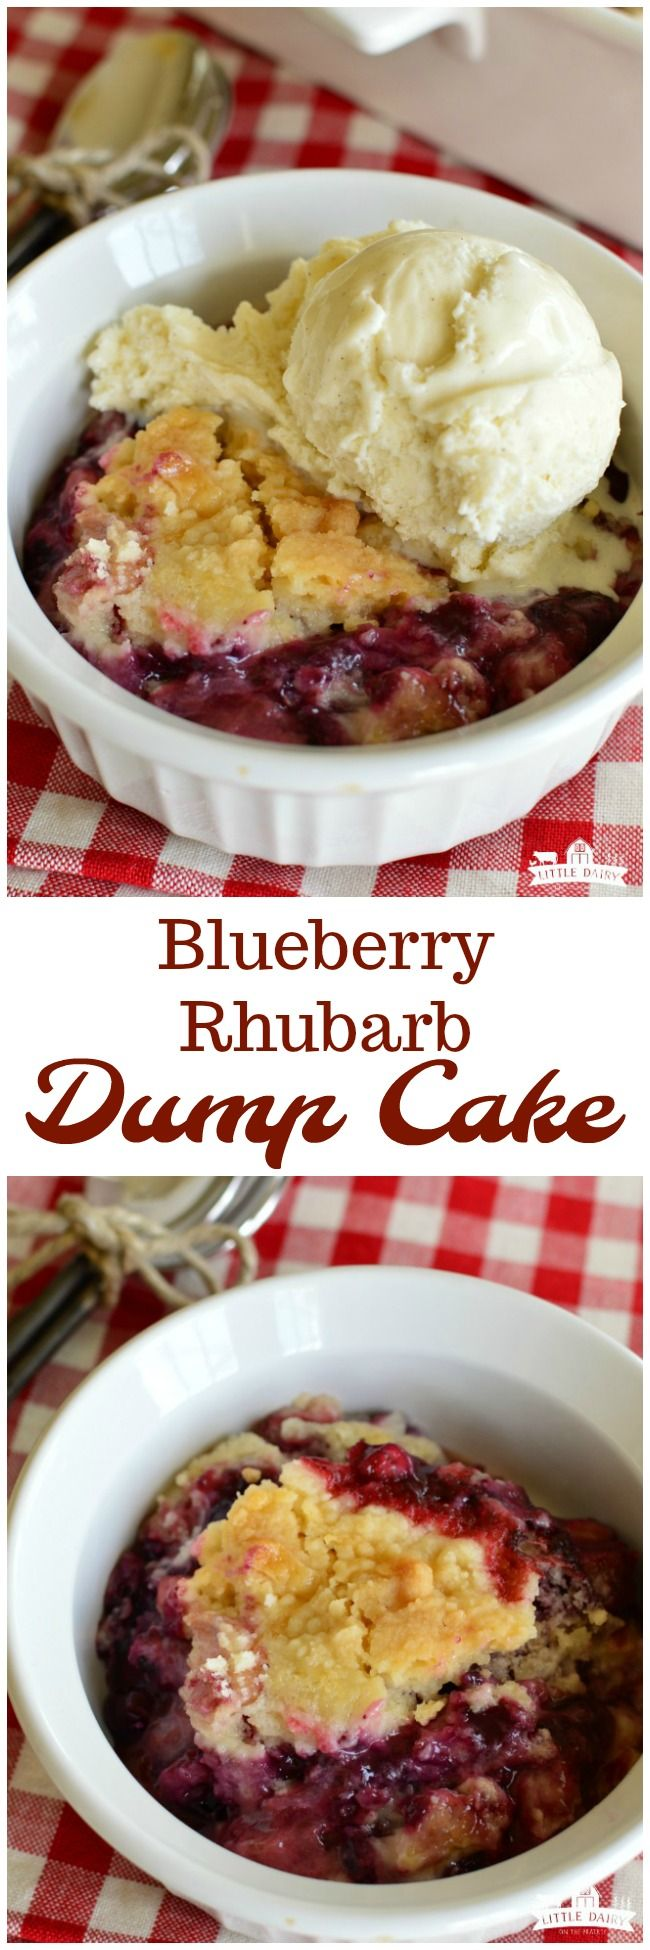 blueberry dump cake 390373 best images about dessert recipes on 1972